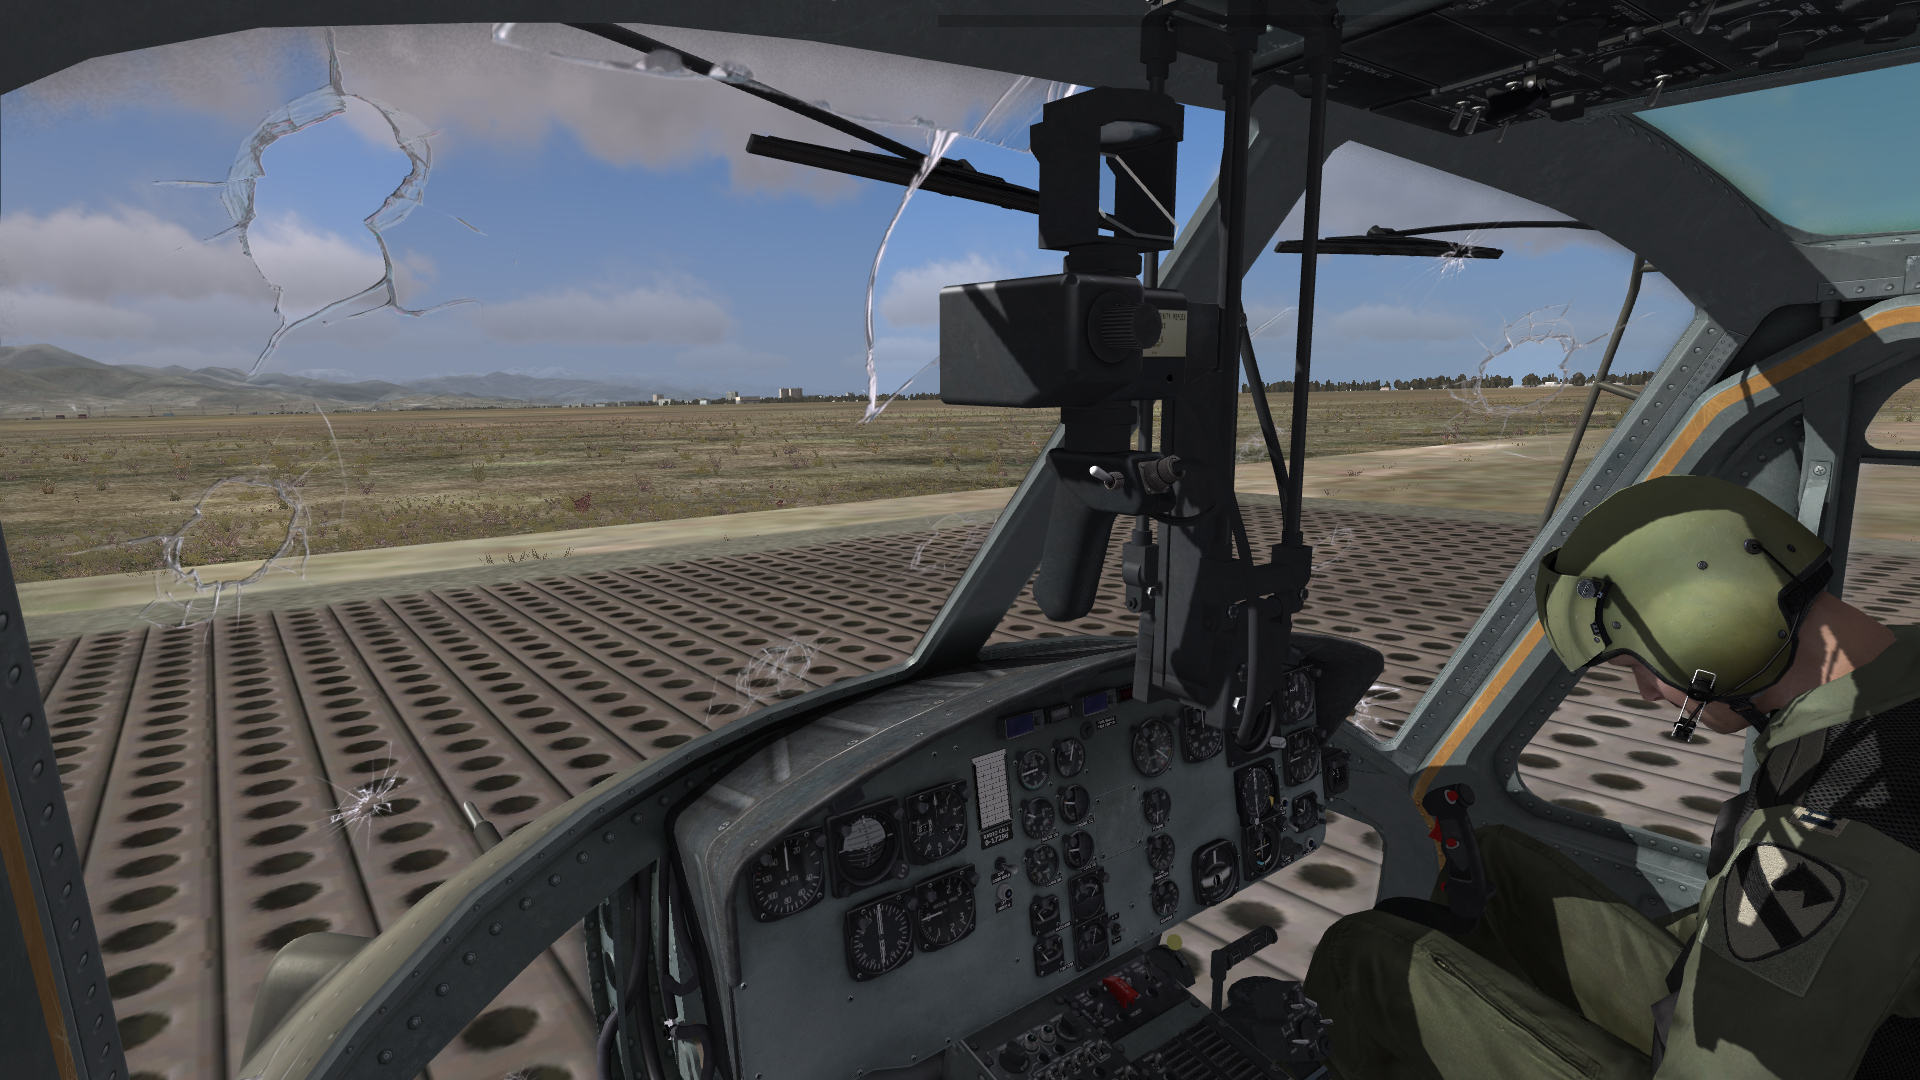 http://www.digitalcombatsimulator.com/images/products/huey/Huey-09.jpg